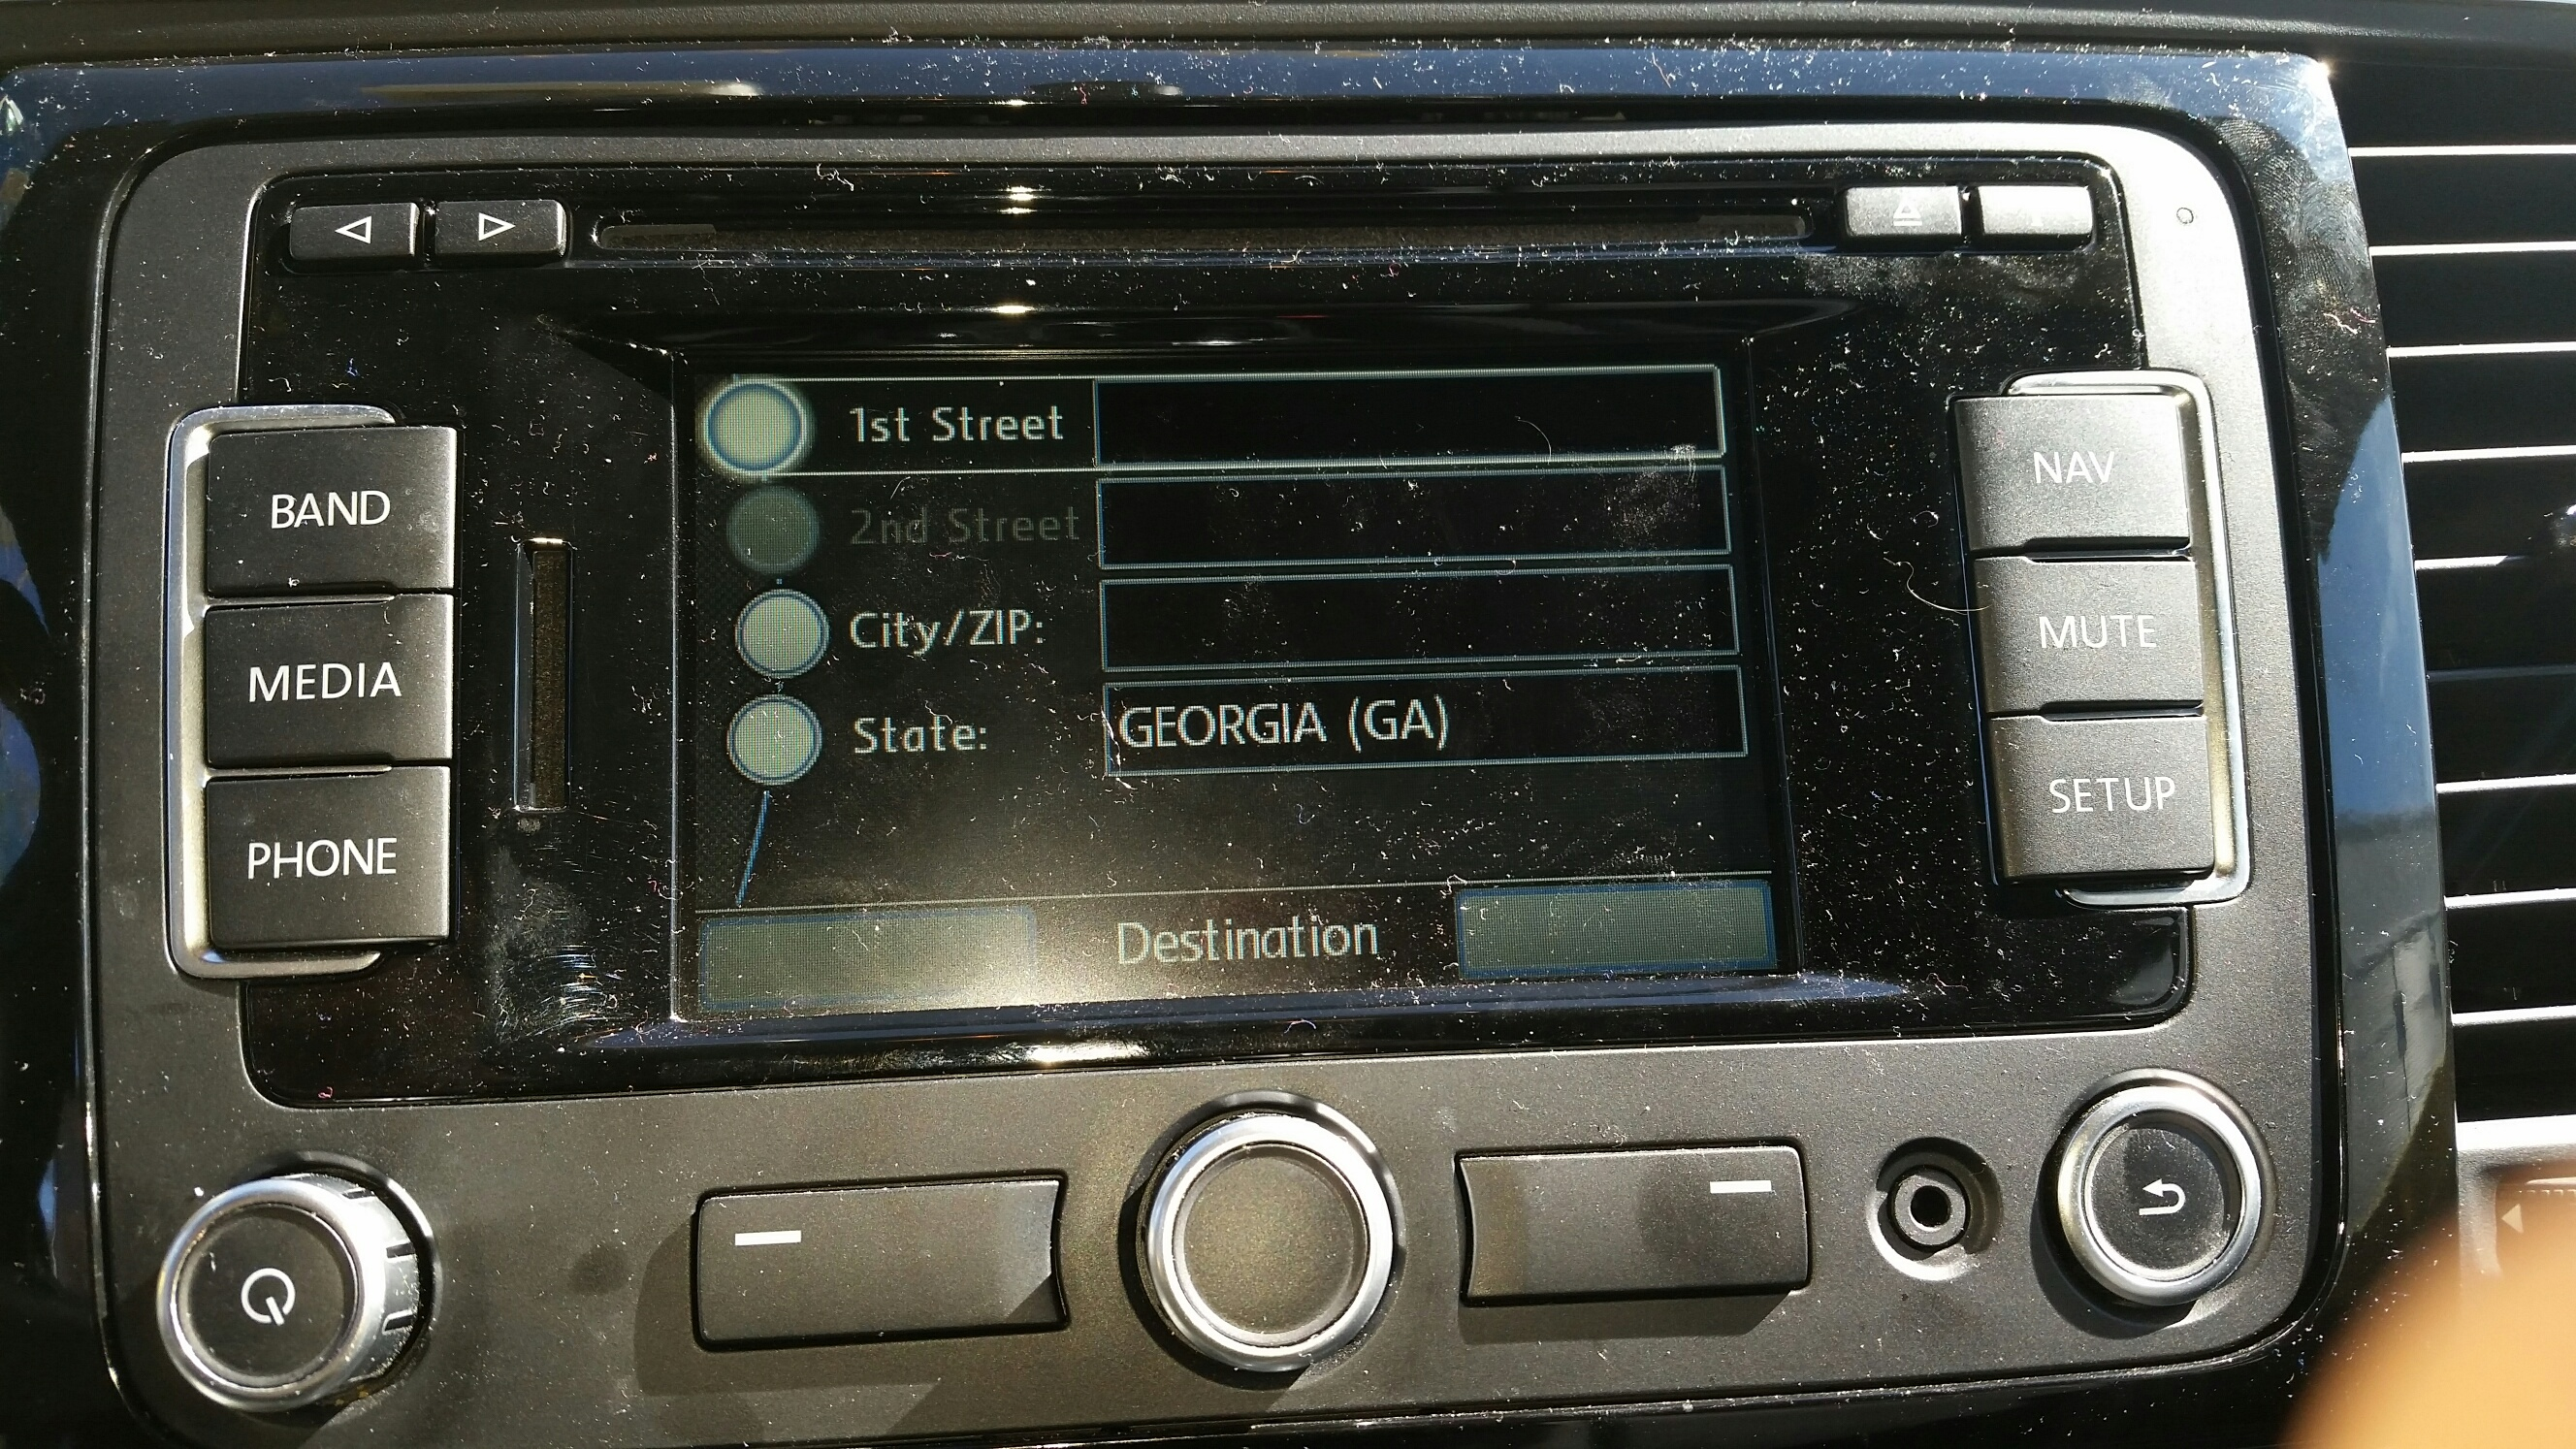 vw display gps nav.jpg